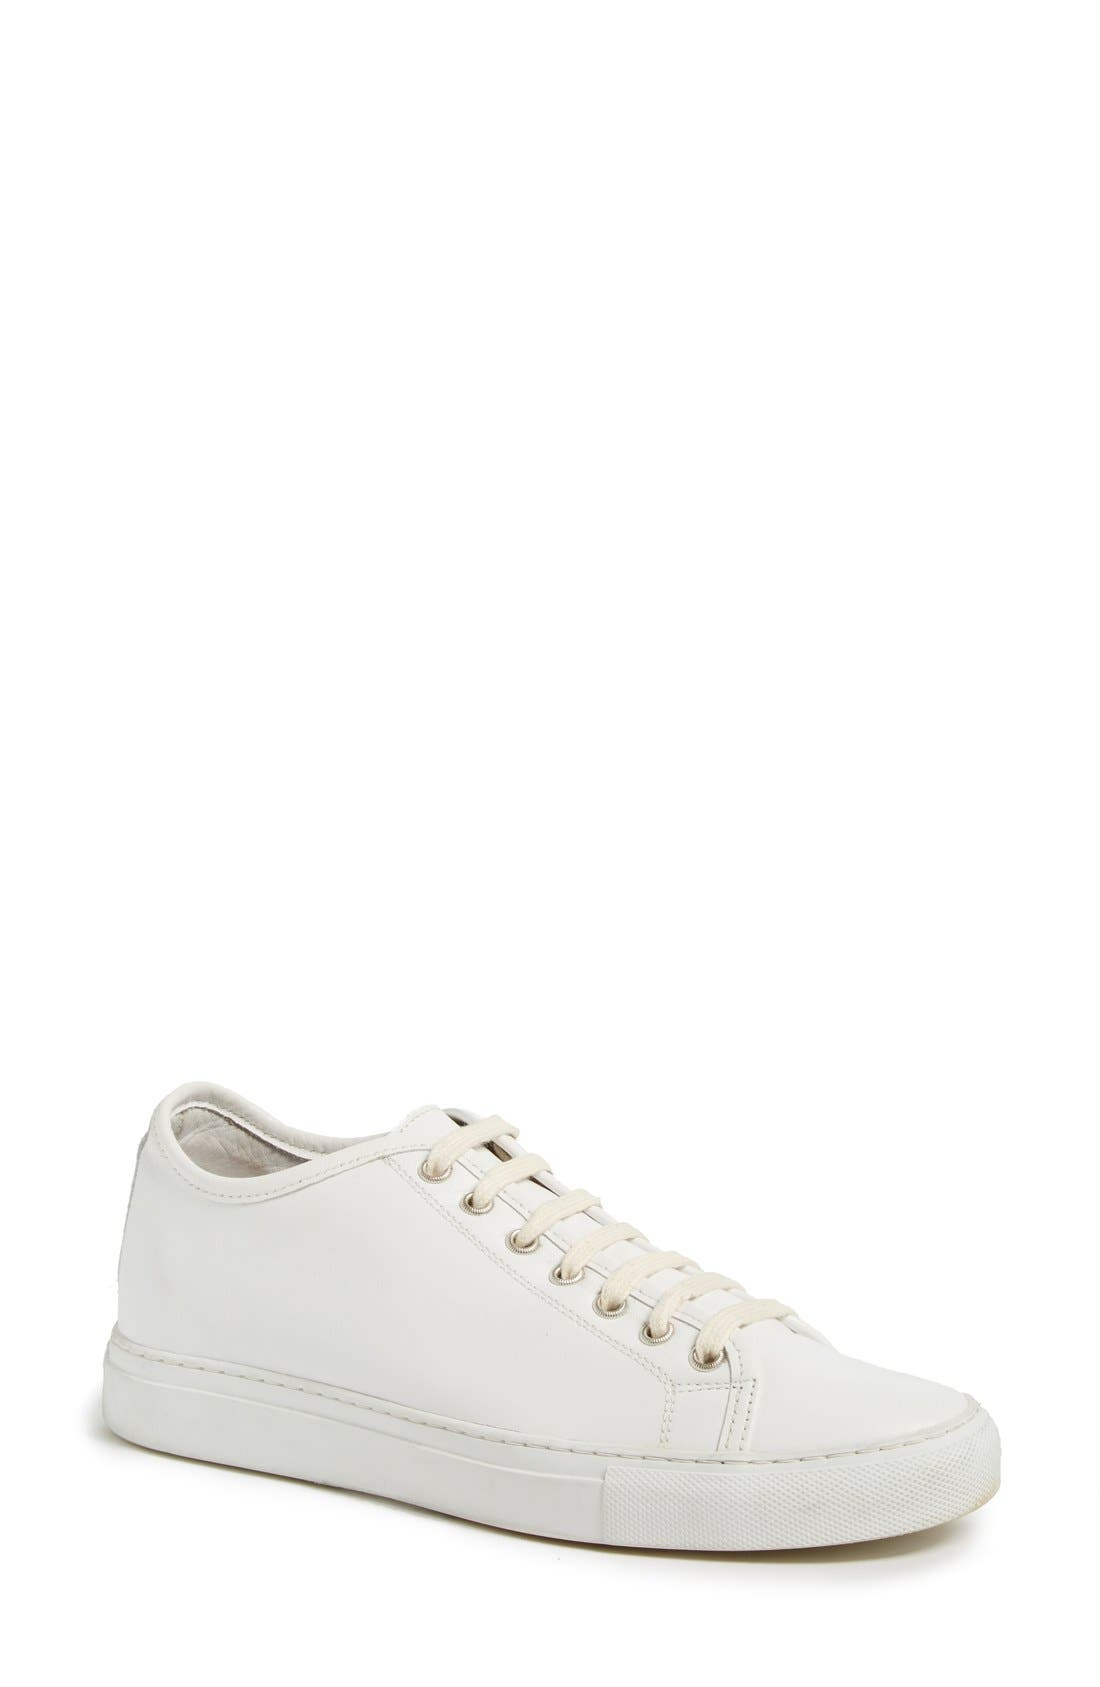 Alternate Image 1 Selected - Sofie D'Hoore 'Frida' Sneaker (Women)